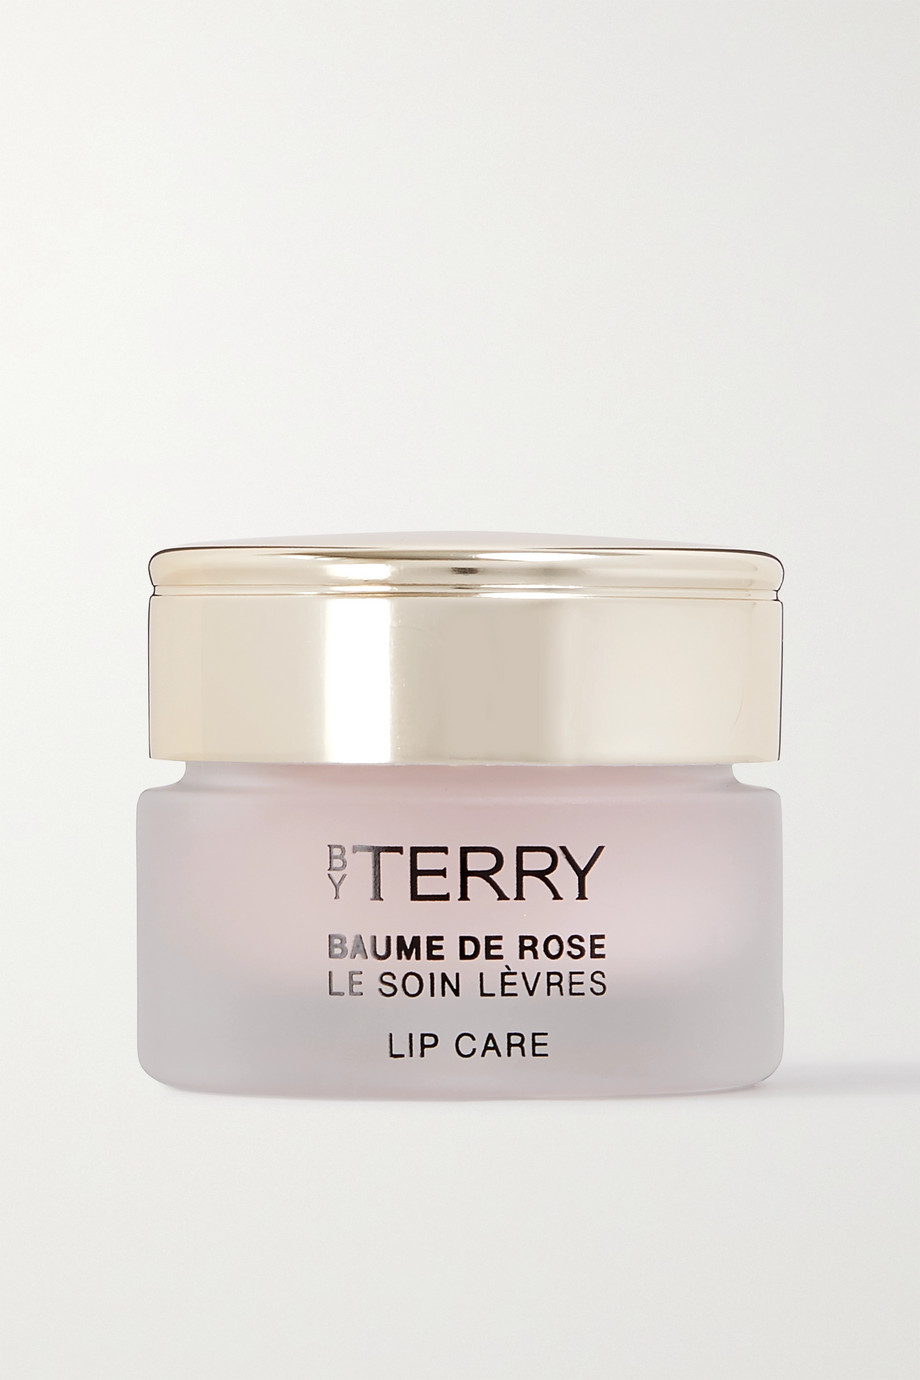 BY TERRY SPF15 Baume De Rose Lip Care